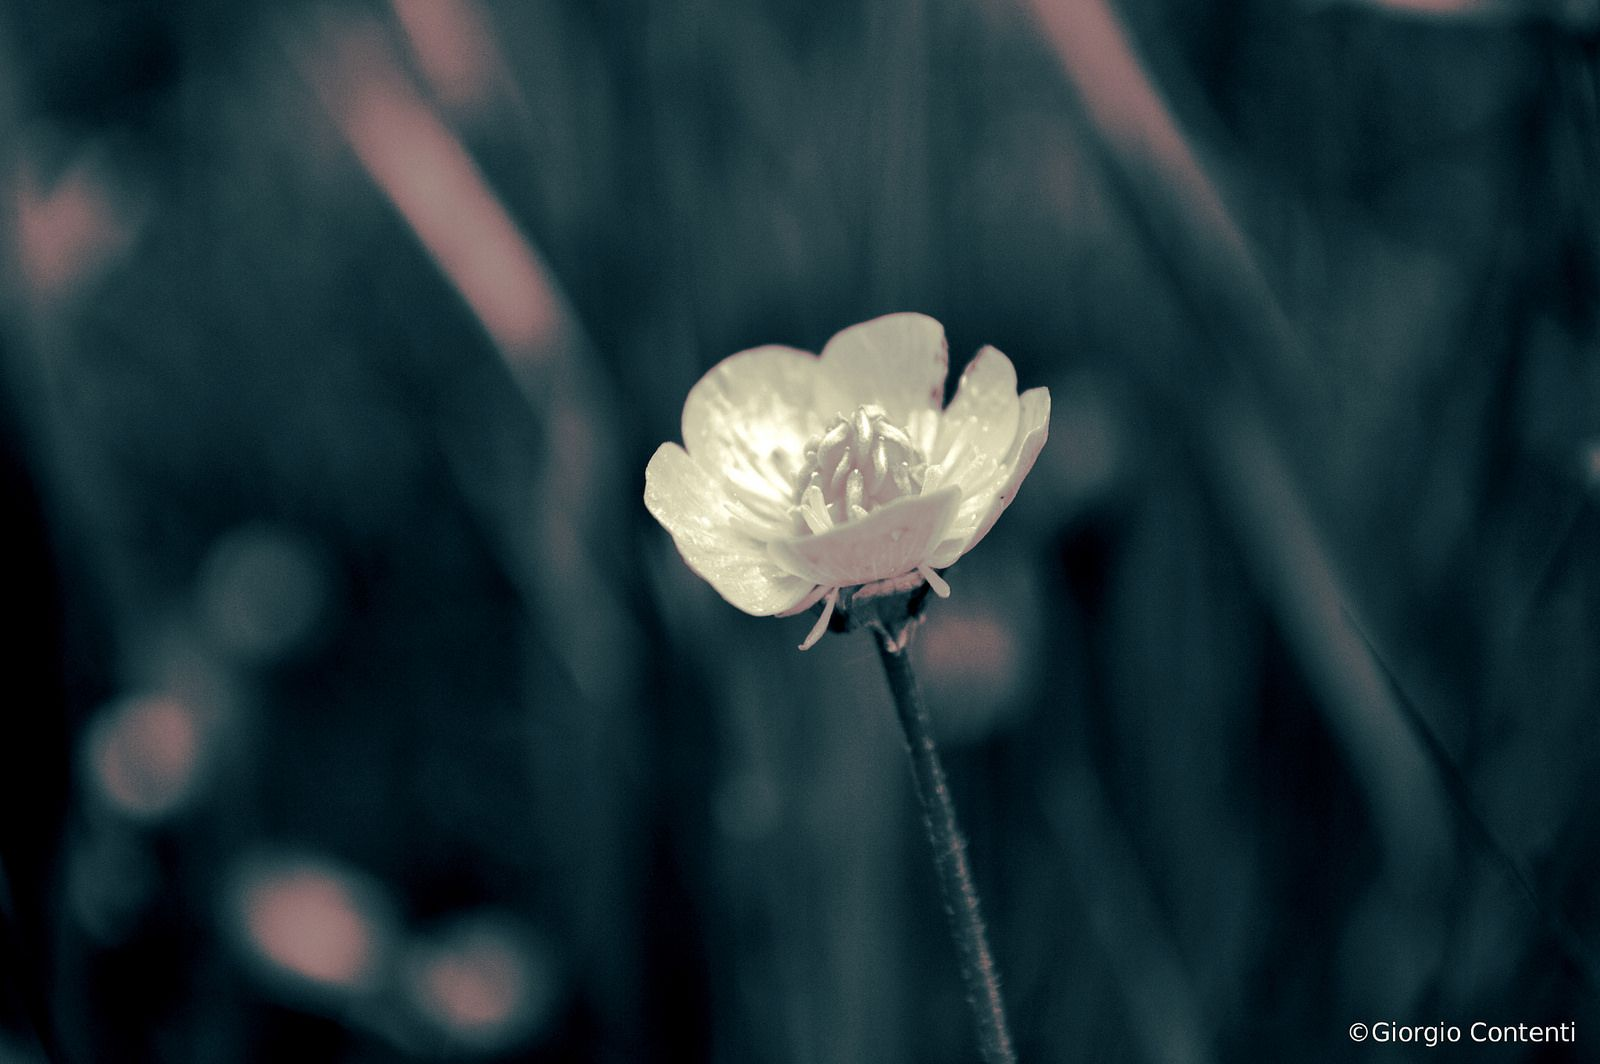 Fiore | Flickr - Photo Sharing!